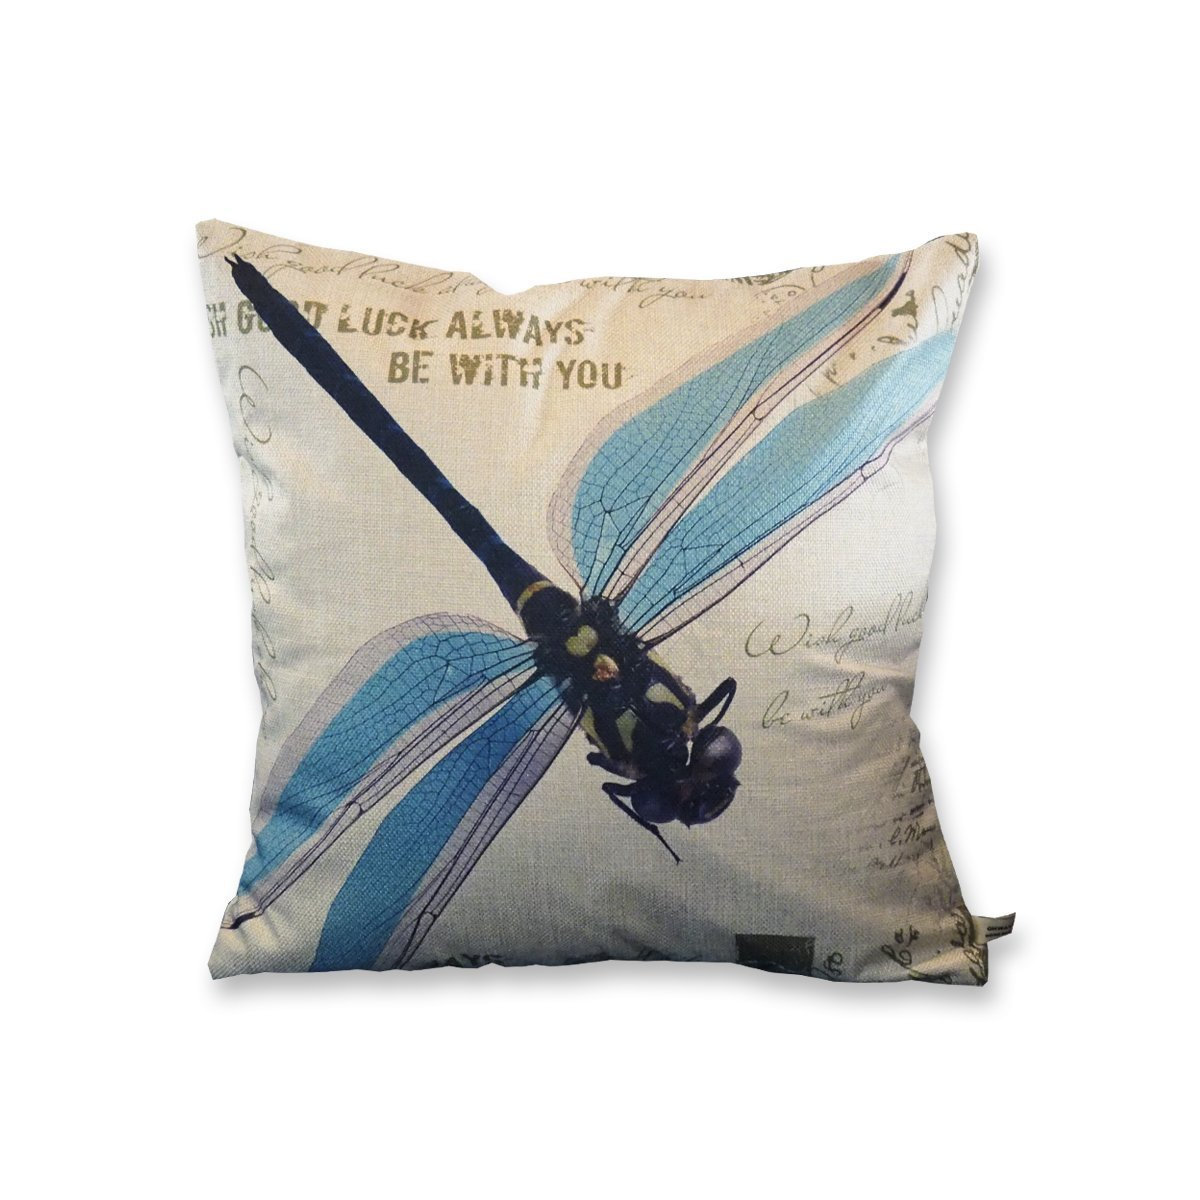 Onway 18 X 18 inch Cotton Linen Retro Vintage Home Decorative Indoor/Outdoor Throw Cushion Cover Pillowcase Sham Blue Dragonfly JIAXING HONGRUI MACHINERY CO. LTD